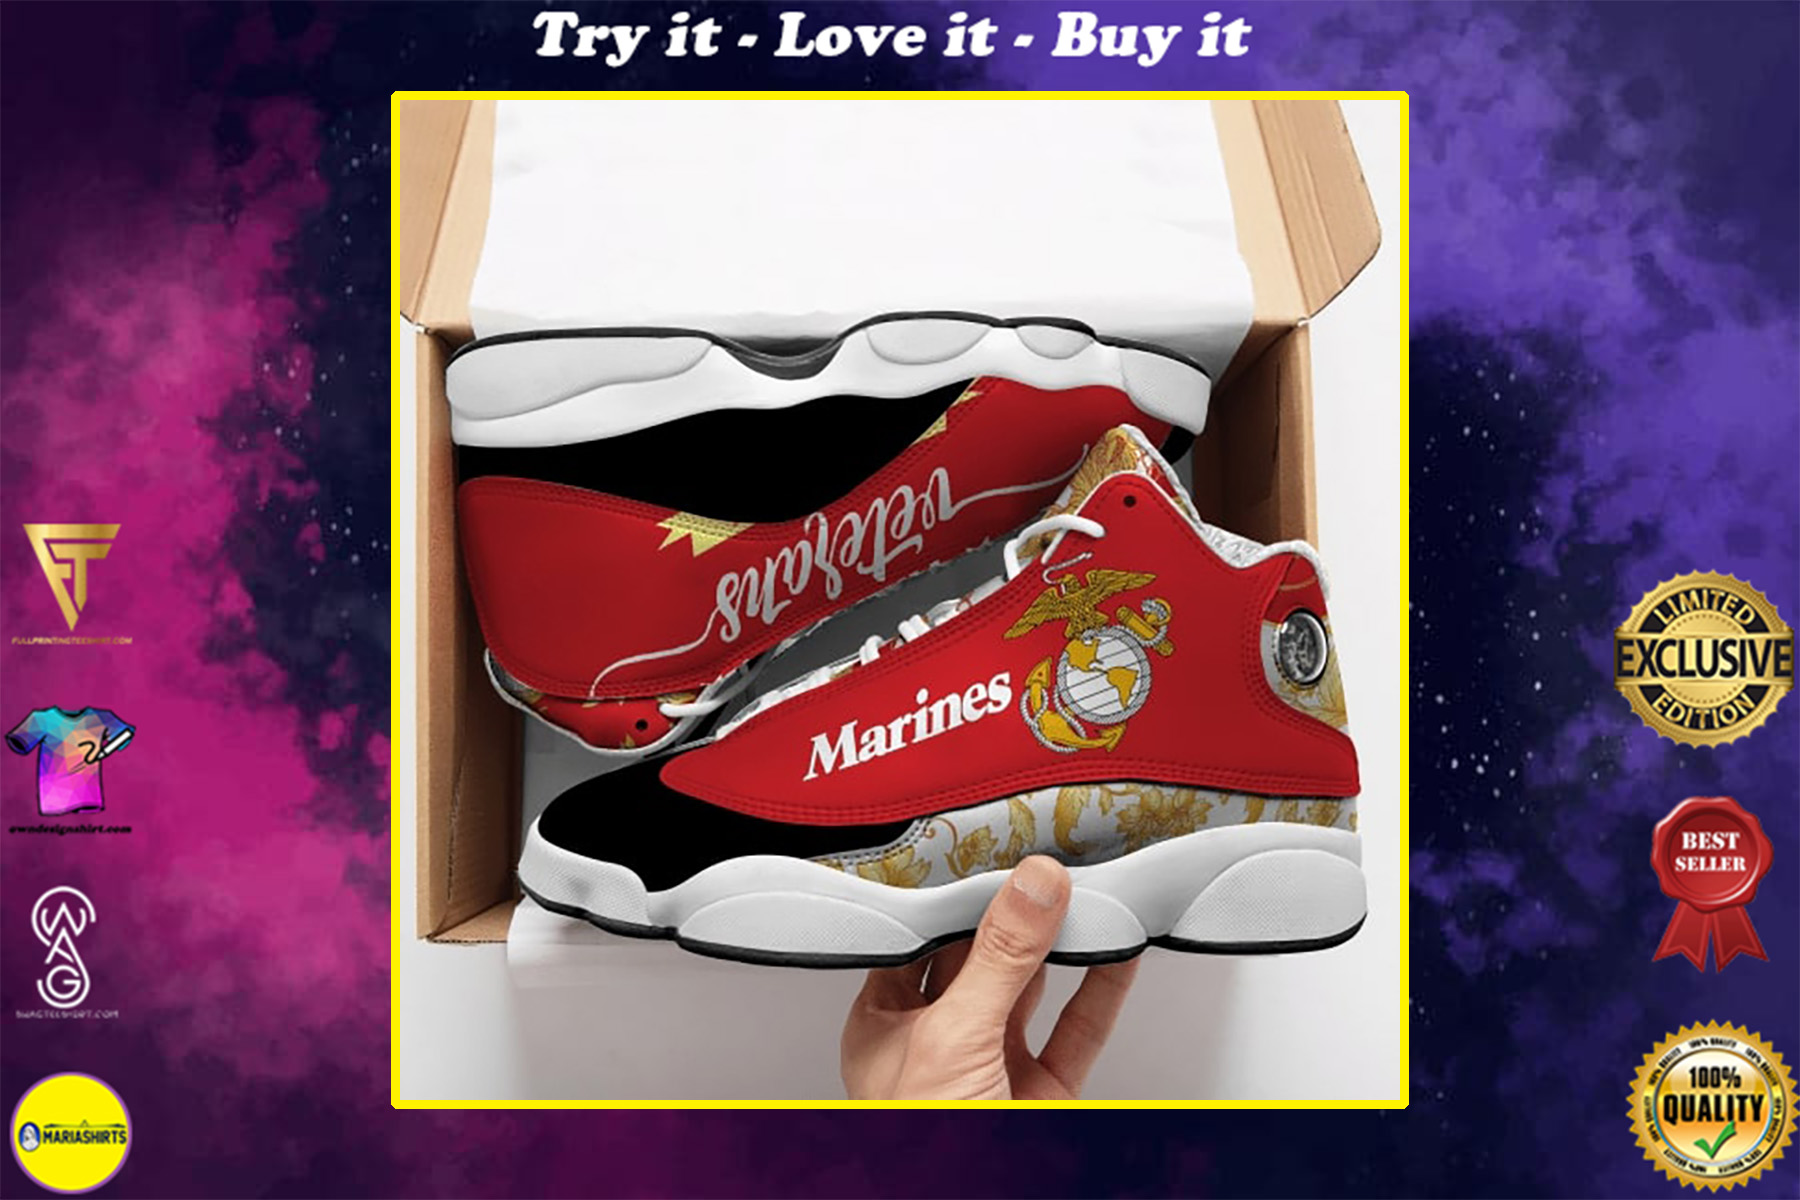 the united states marine corps all over printed air jordan 13 sneakers